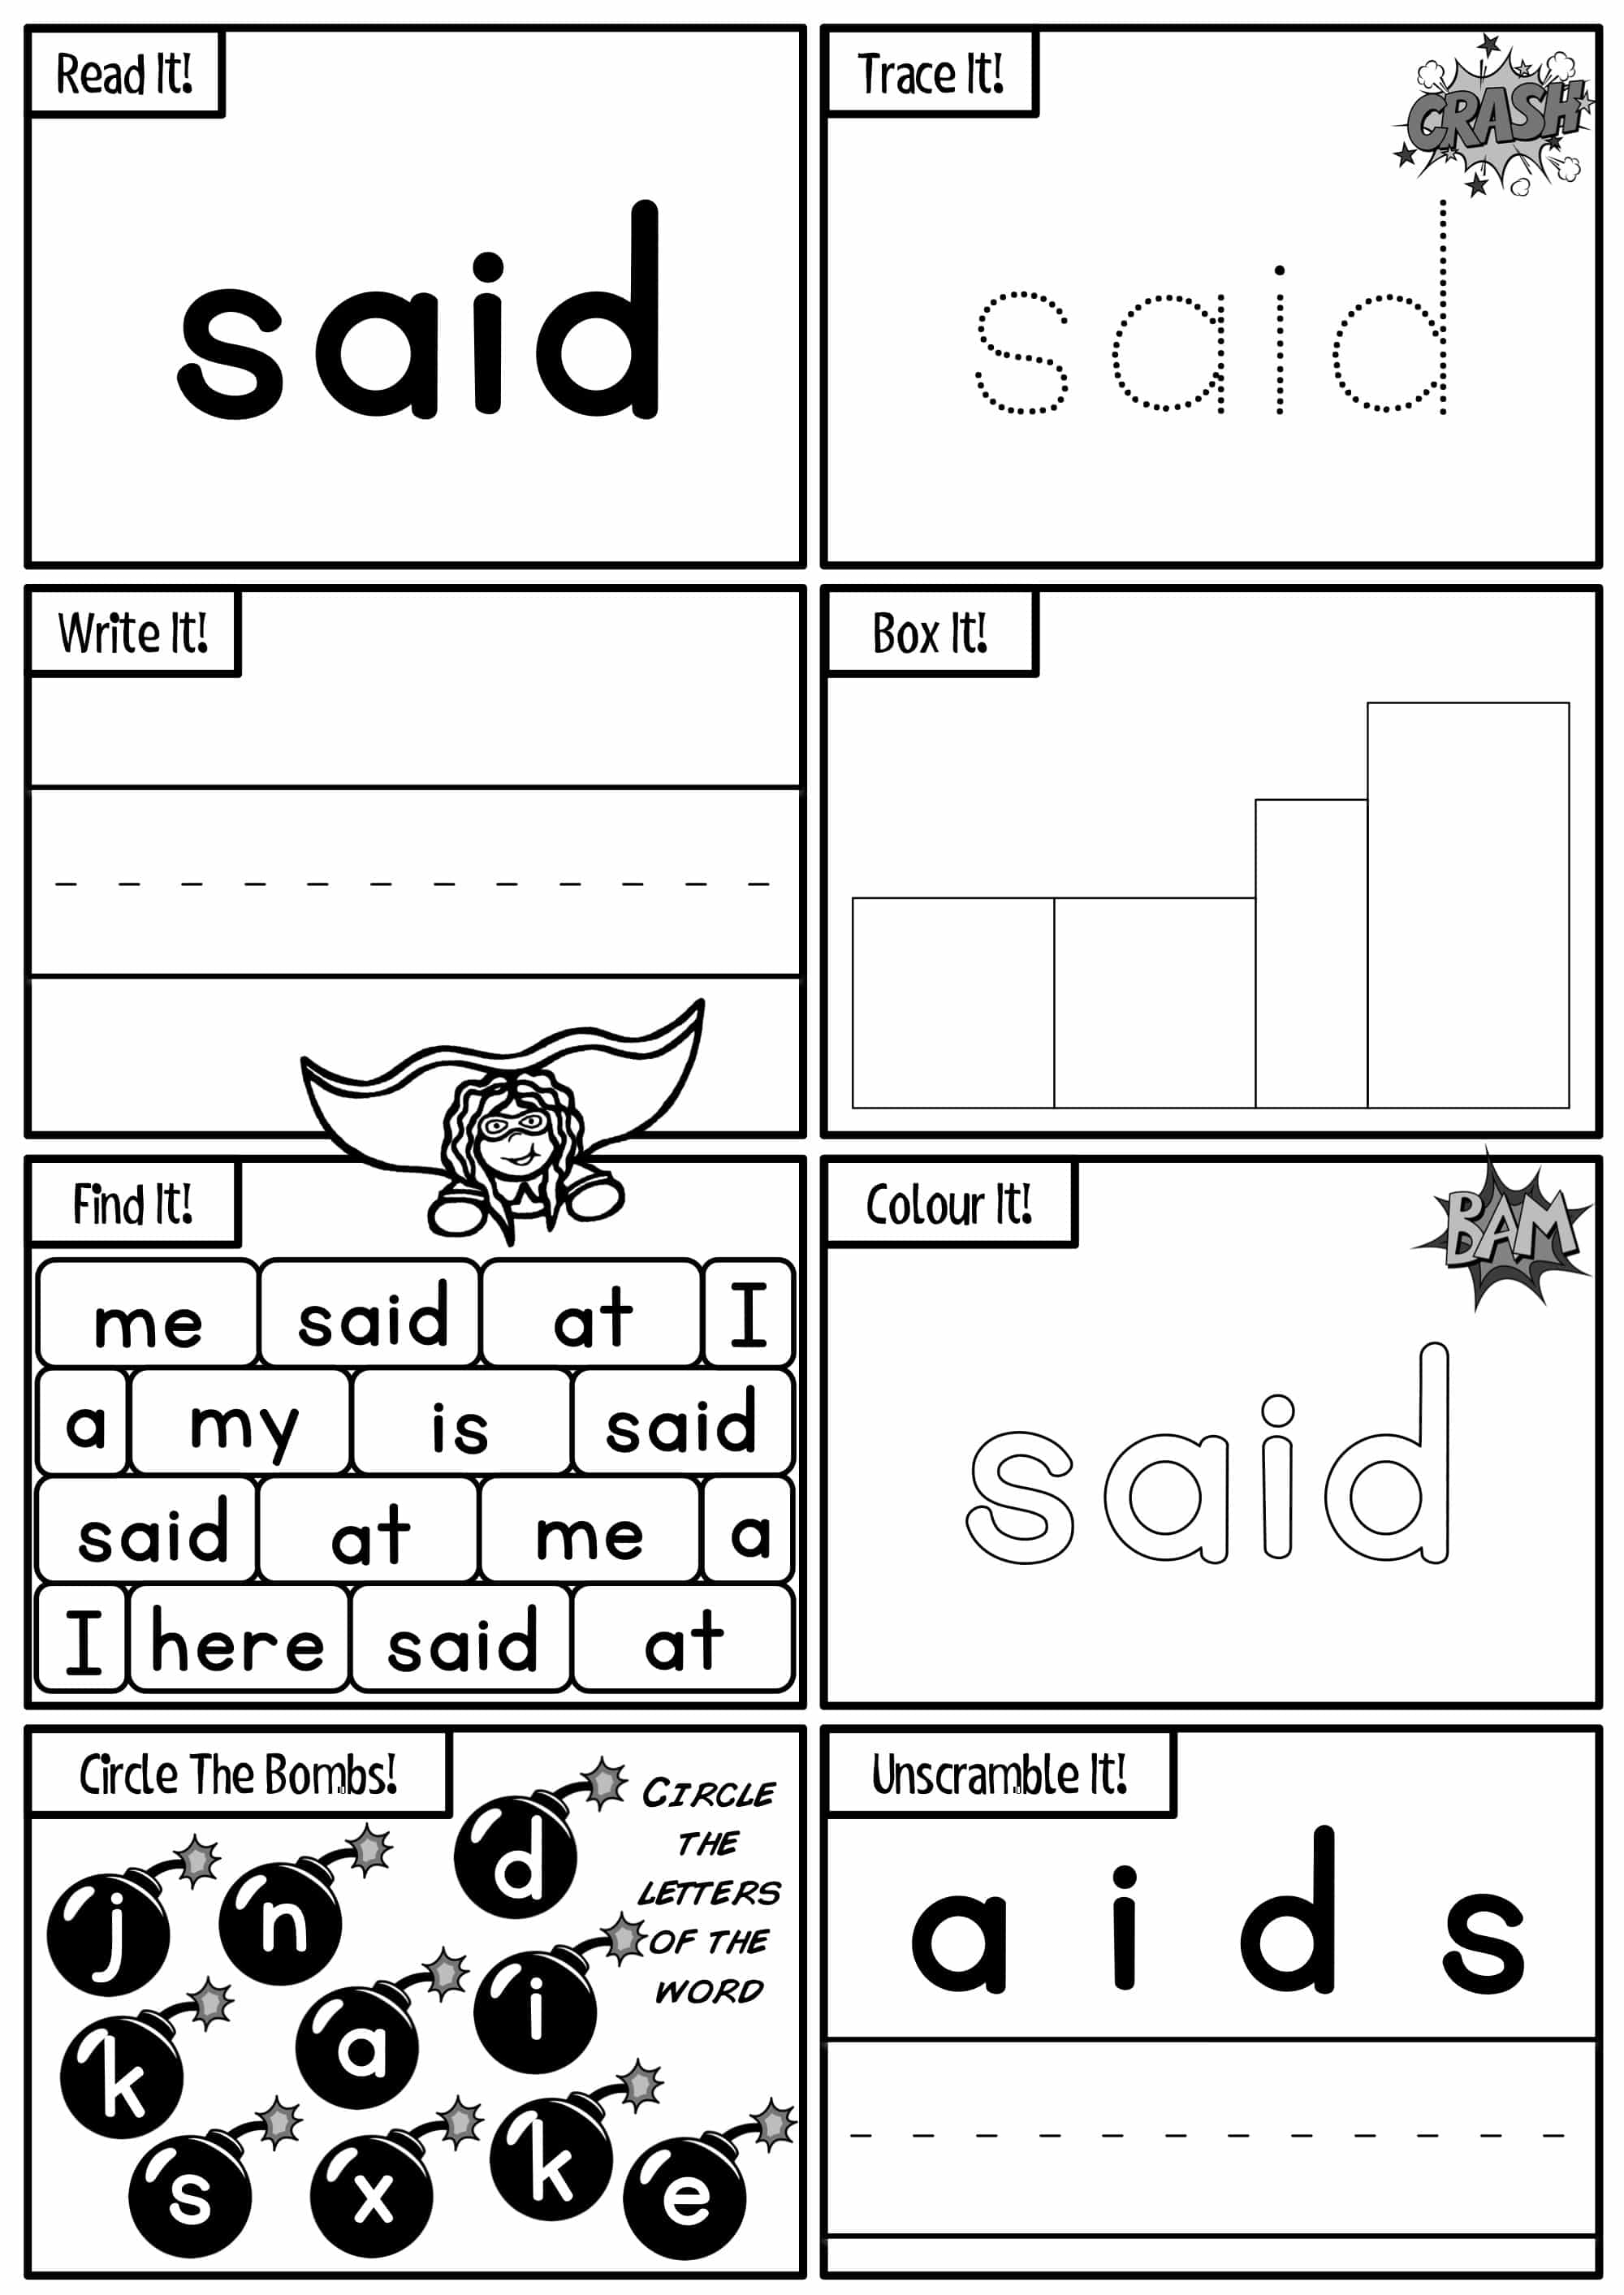 My High Frequency Word Worksheet